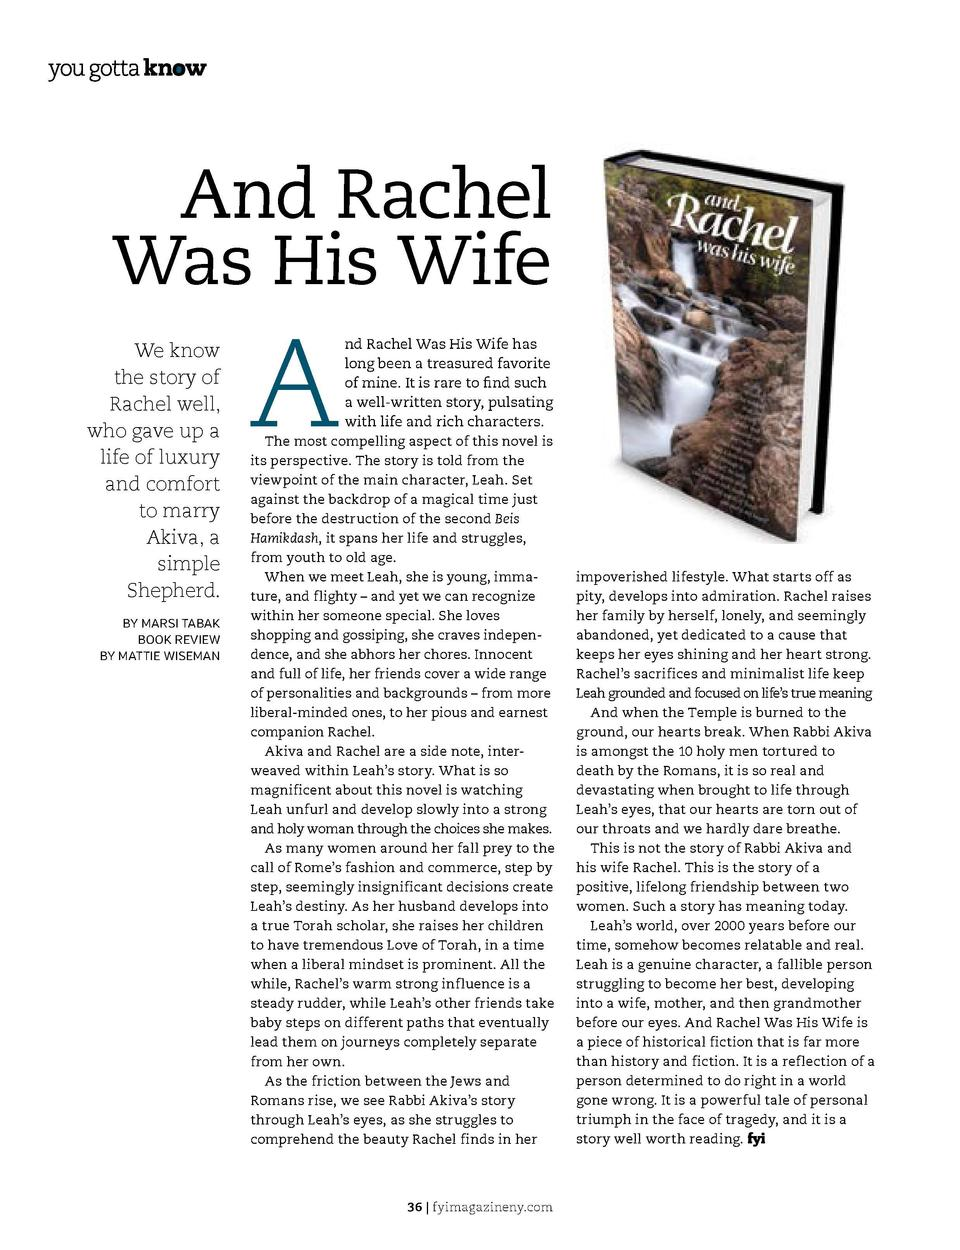 children   s book review  And Rachel Was His Wife We know the story of Rachel well, who gave up a life of luxury and comfo...